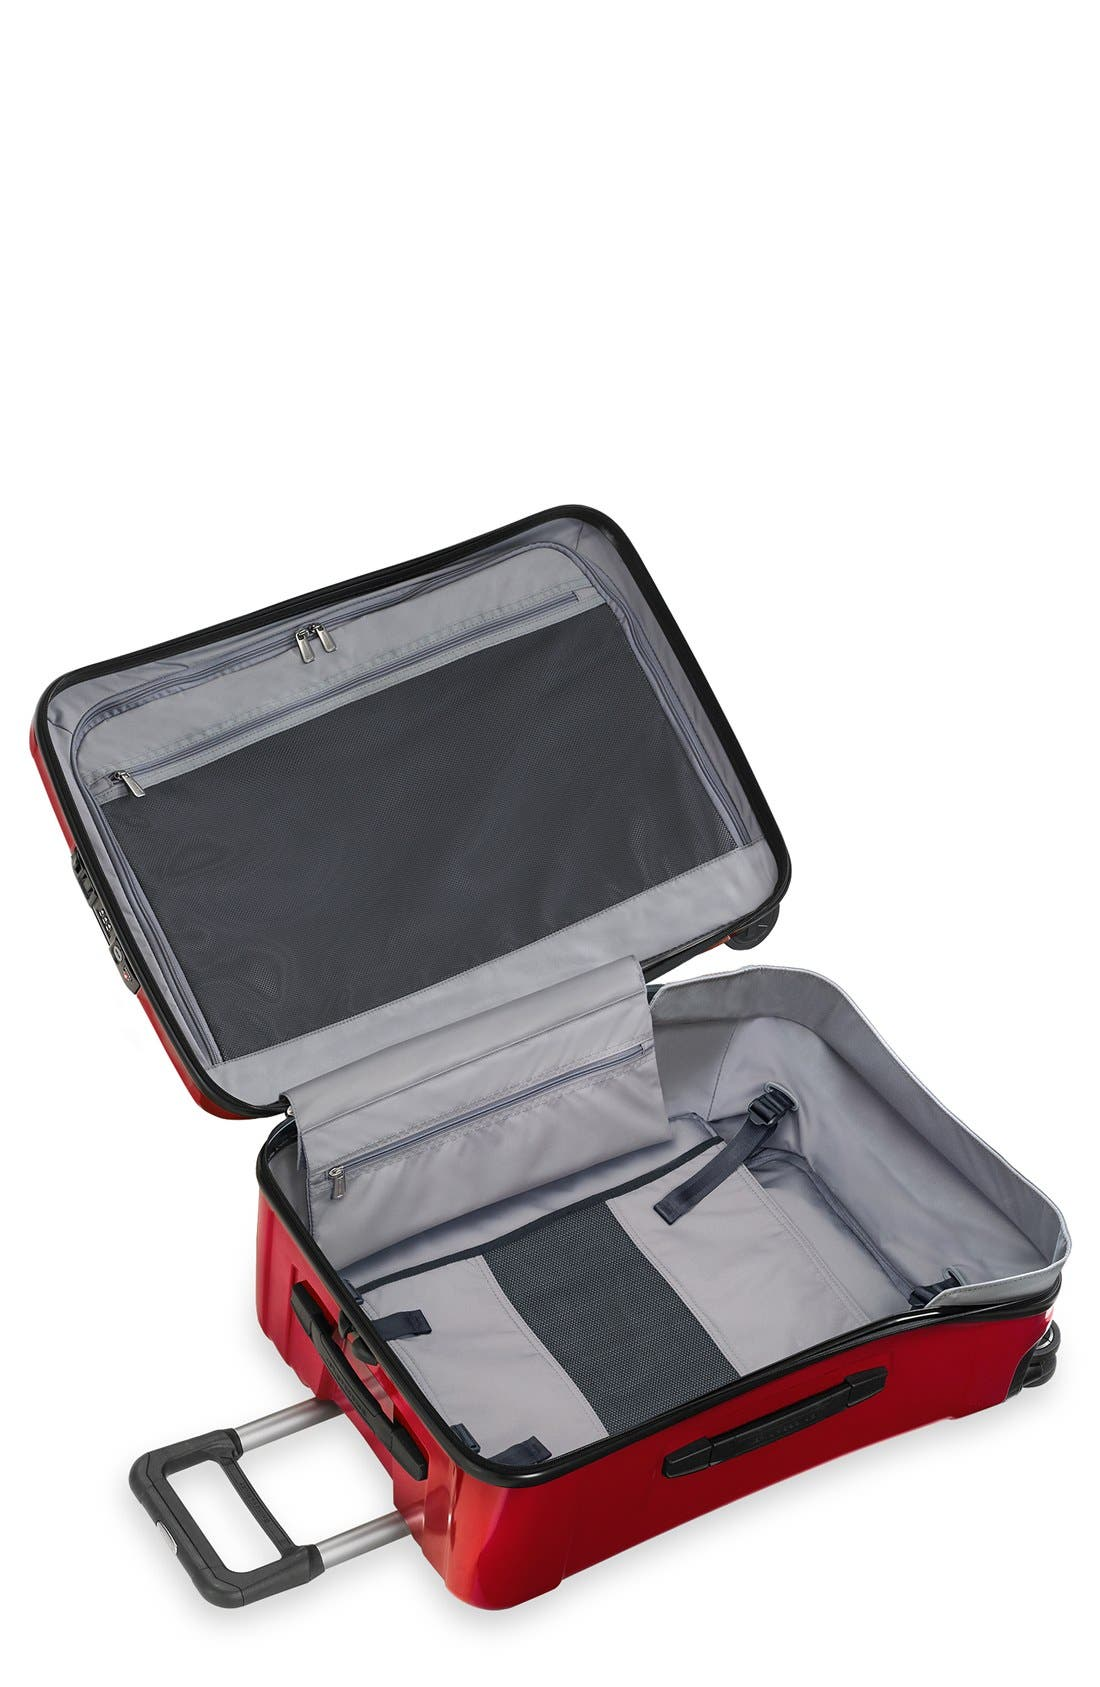 Main Image - Briggs & Riley 'Medium Torq' Spinner Packing Case (24 Inch)